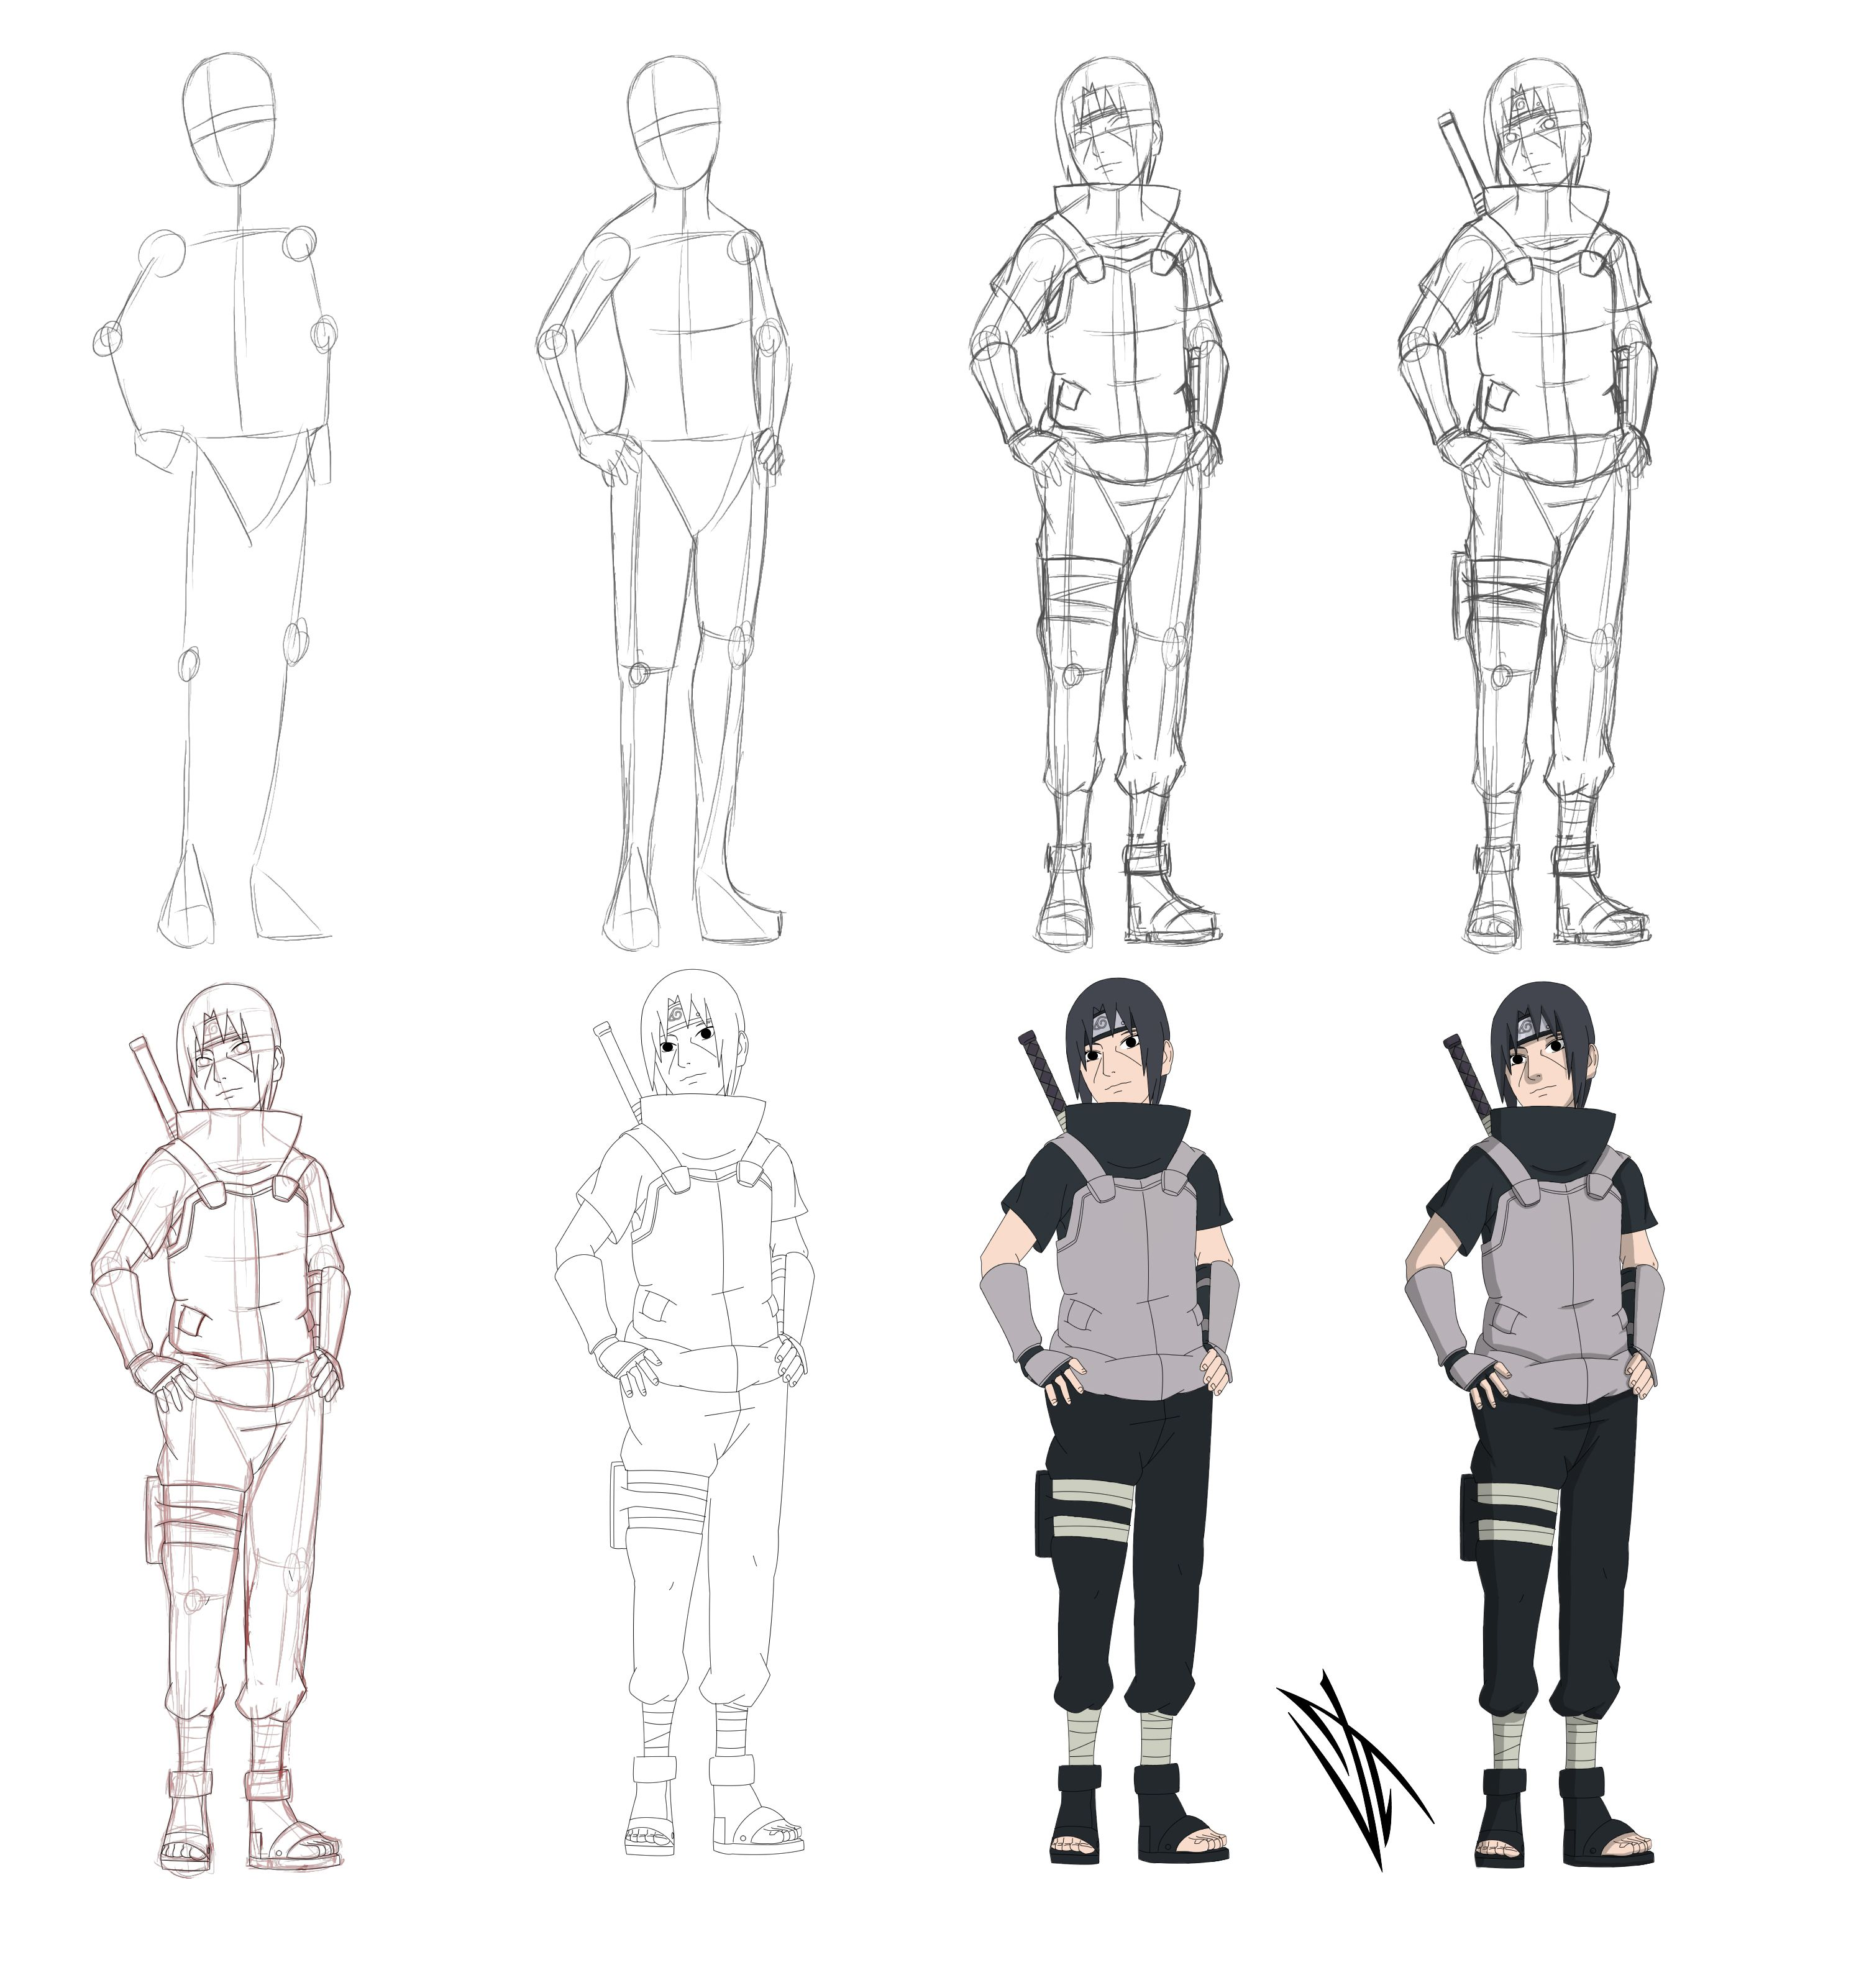 Pin By 牛邓 On 线稿 In 2019 Pinterest Naruto Drawings Naruto